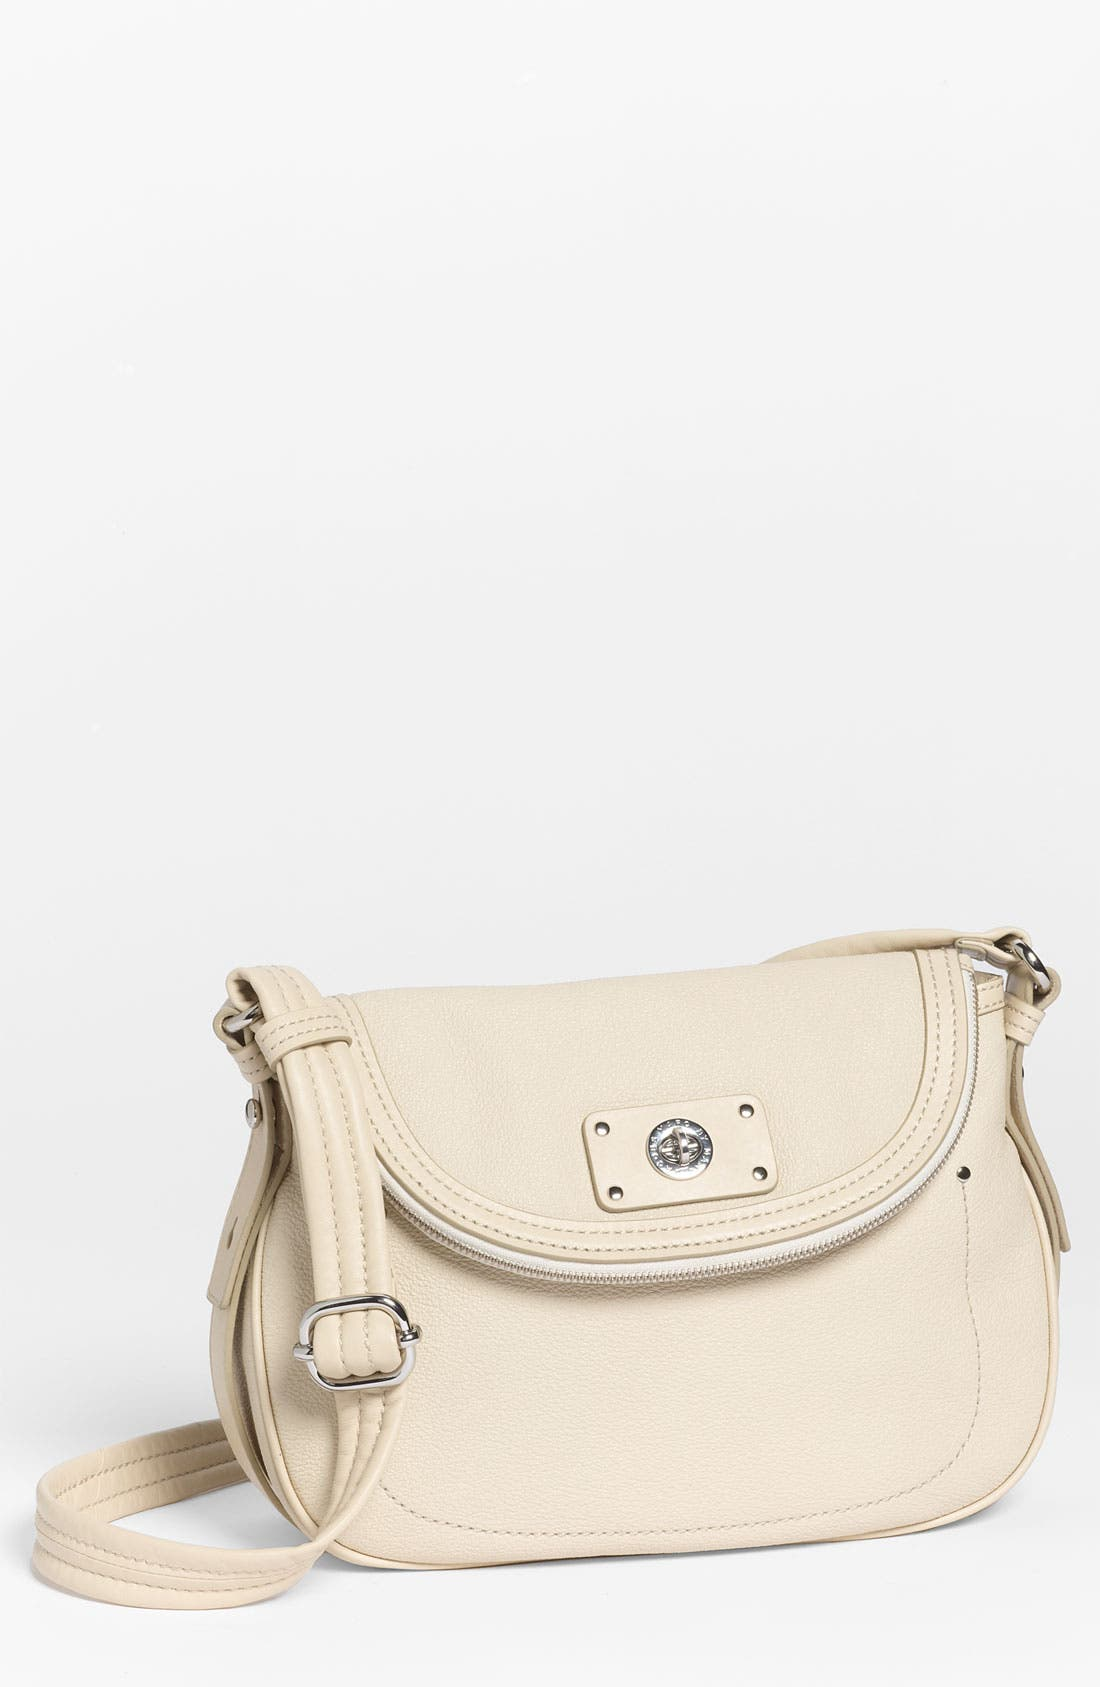 Main Image - MARC BY MARC JACOBS 'Totally Turnlock - Natasha' Crossbody Bag